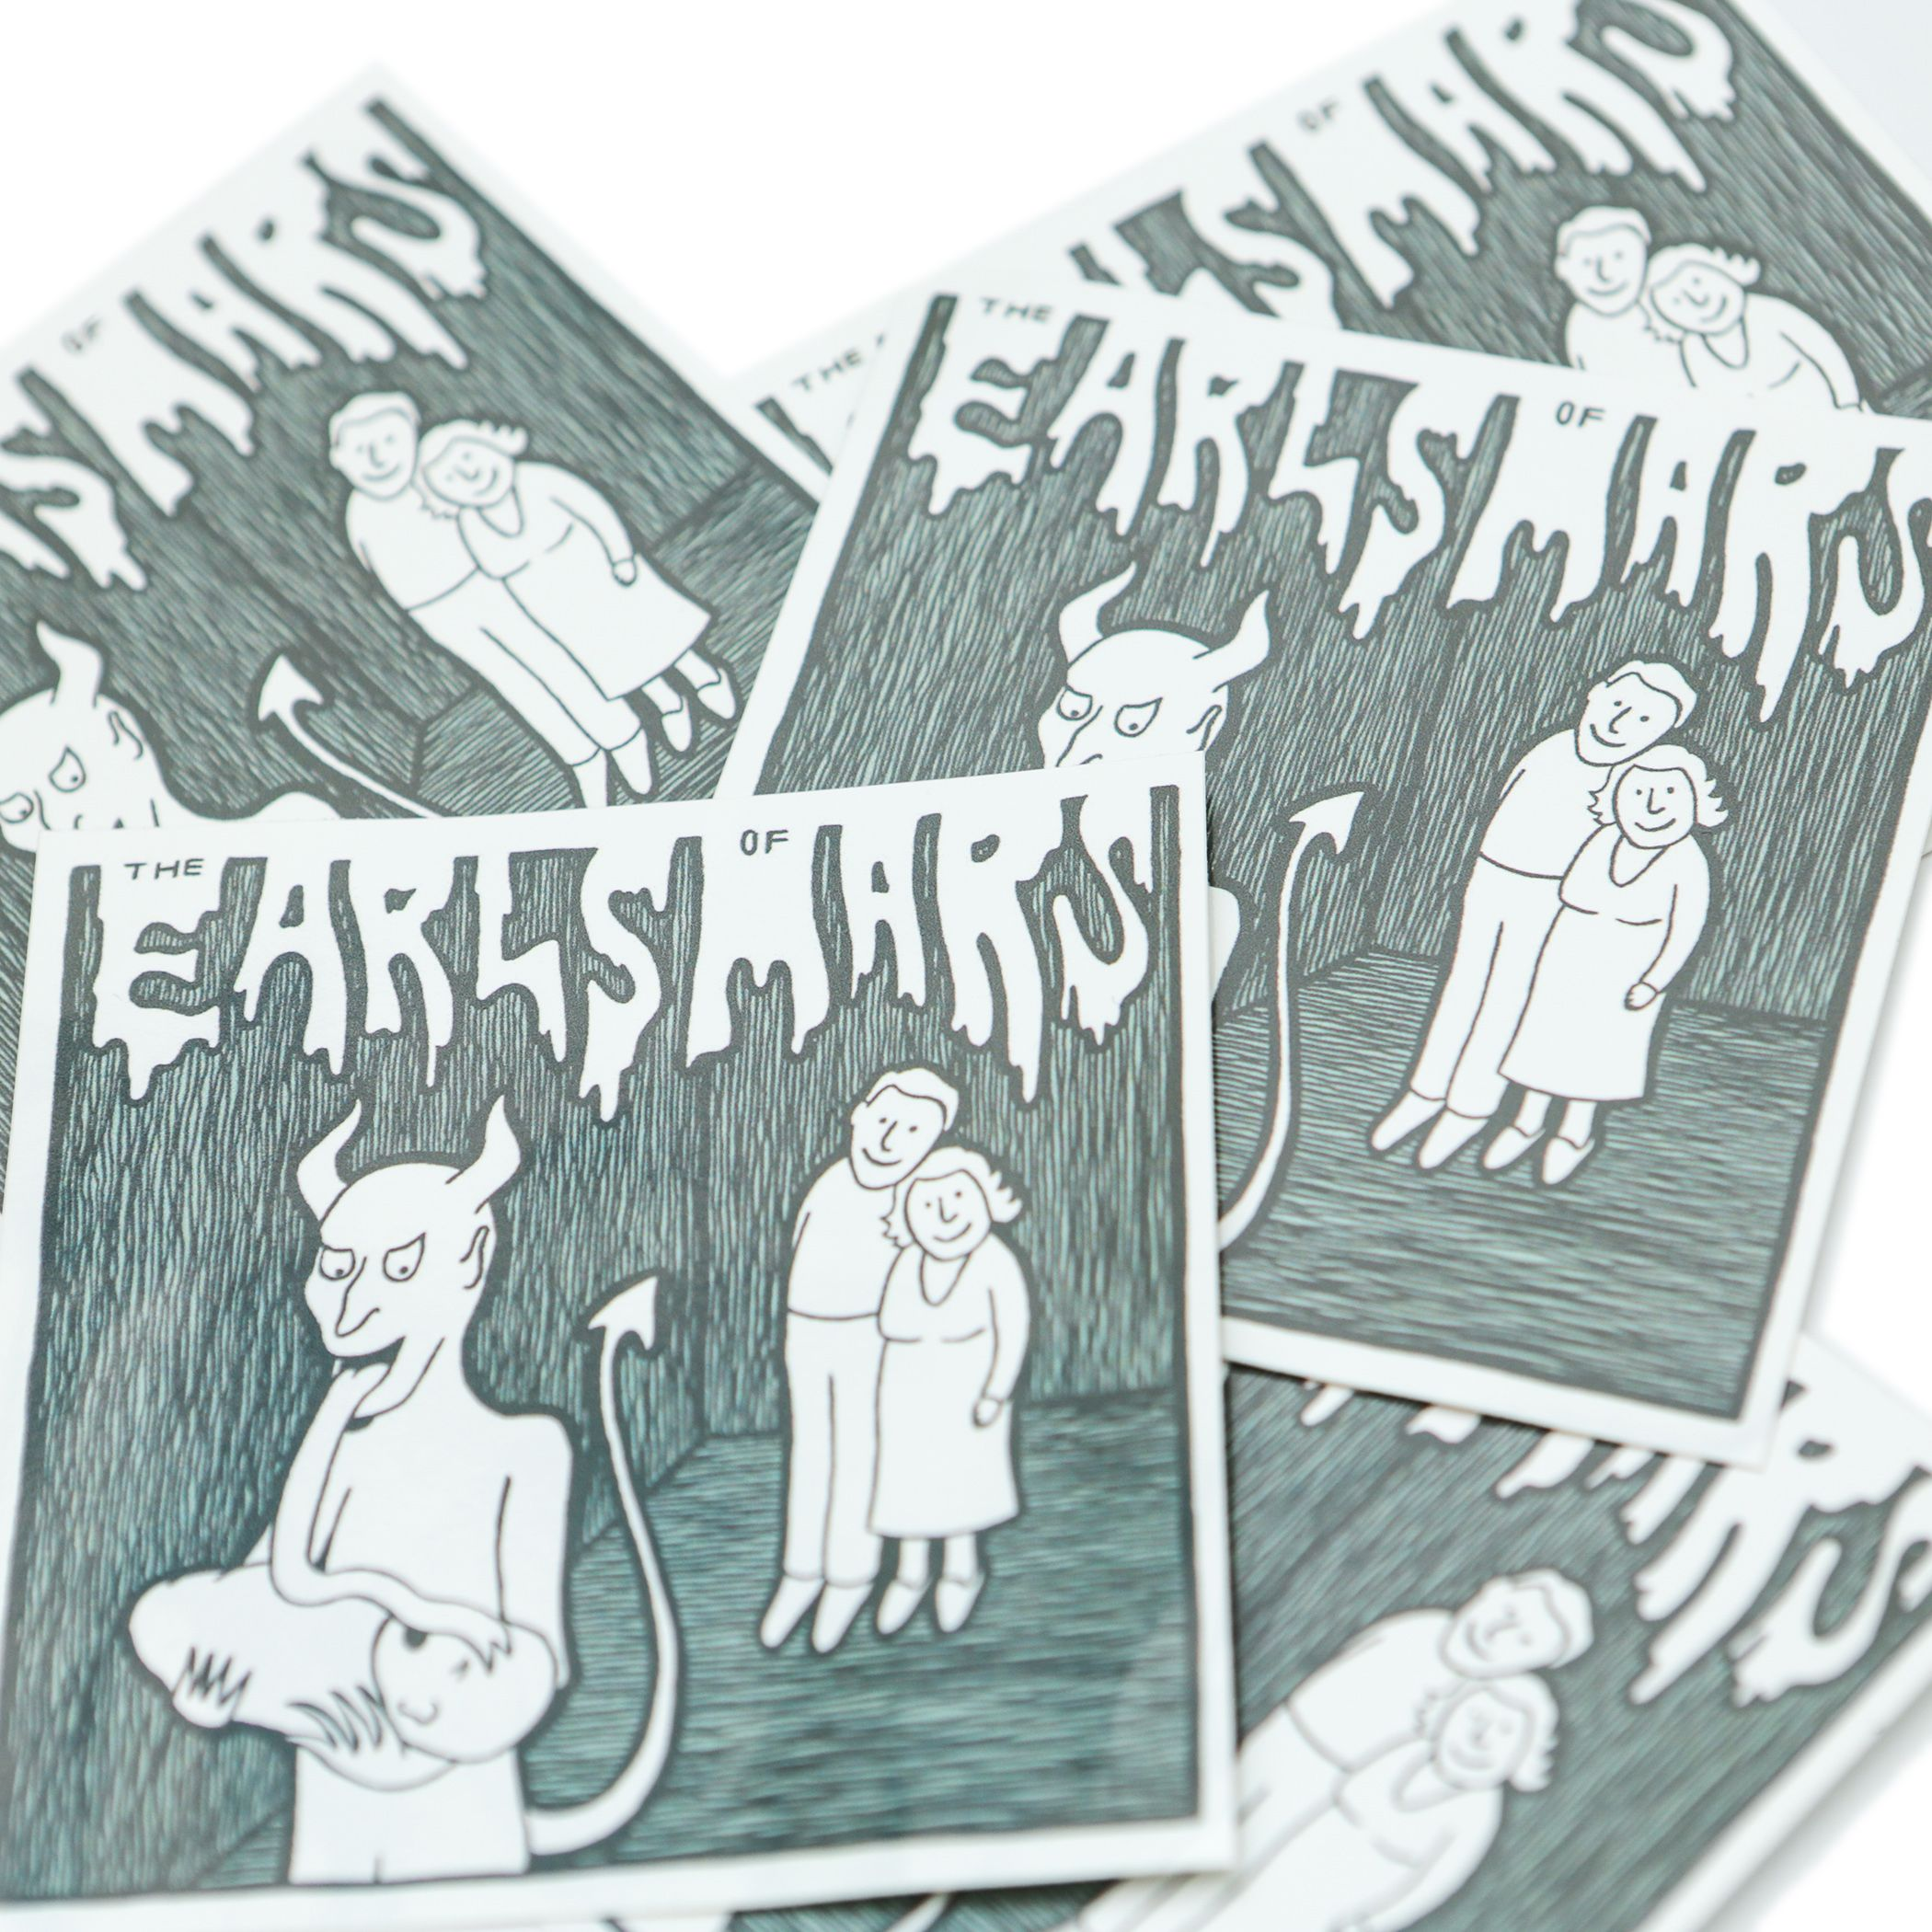 Stickers for The Earls Of Mars! Check them here: www.theearlsofmars.com Check our stickers here: http://awsmr.ch/ZWzczH